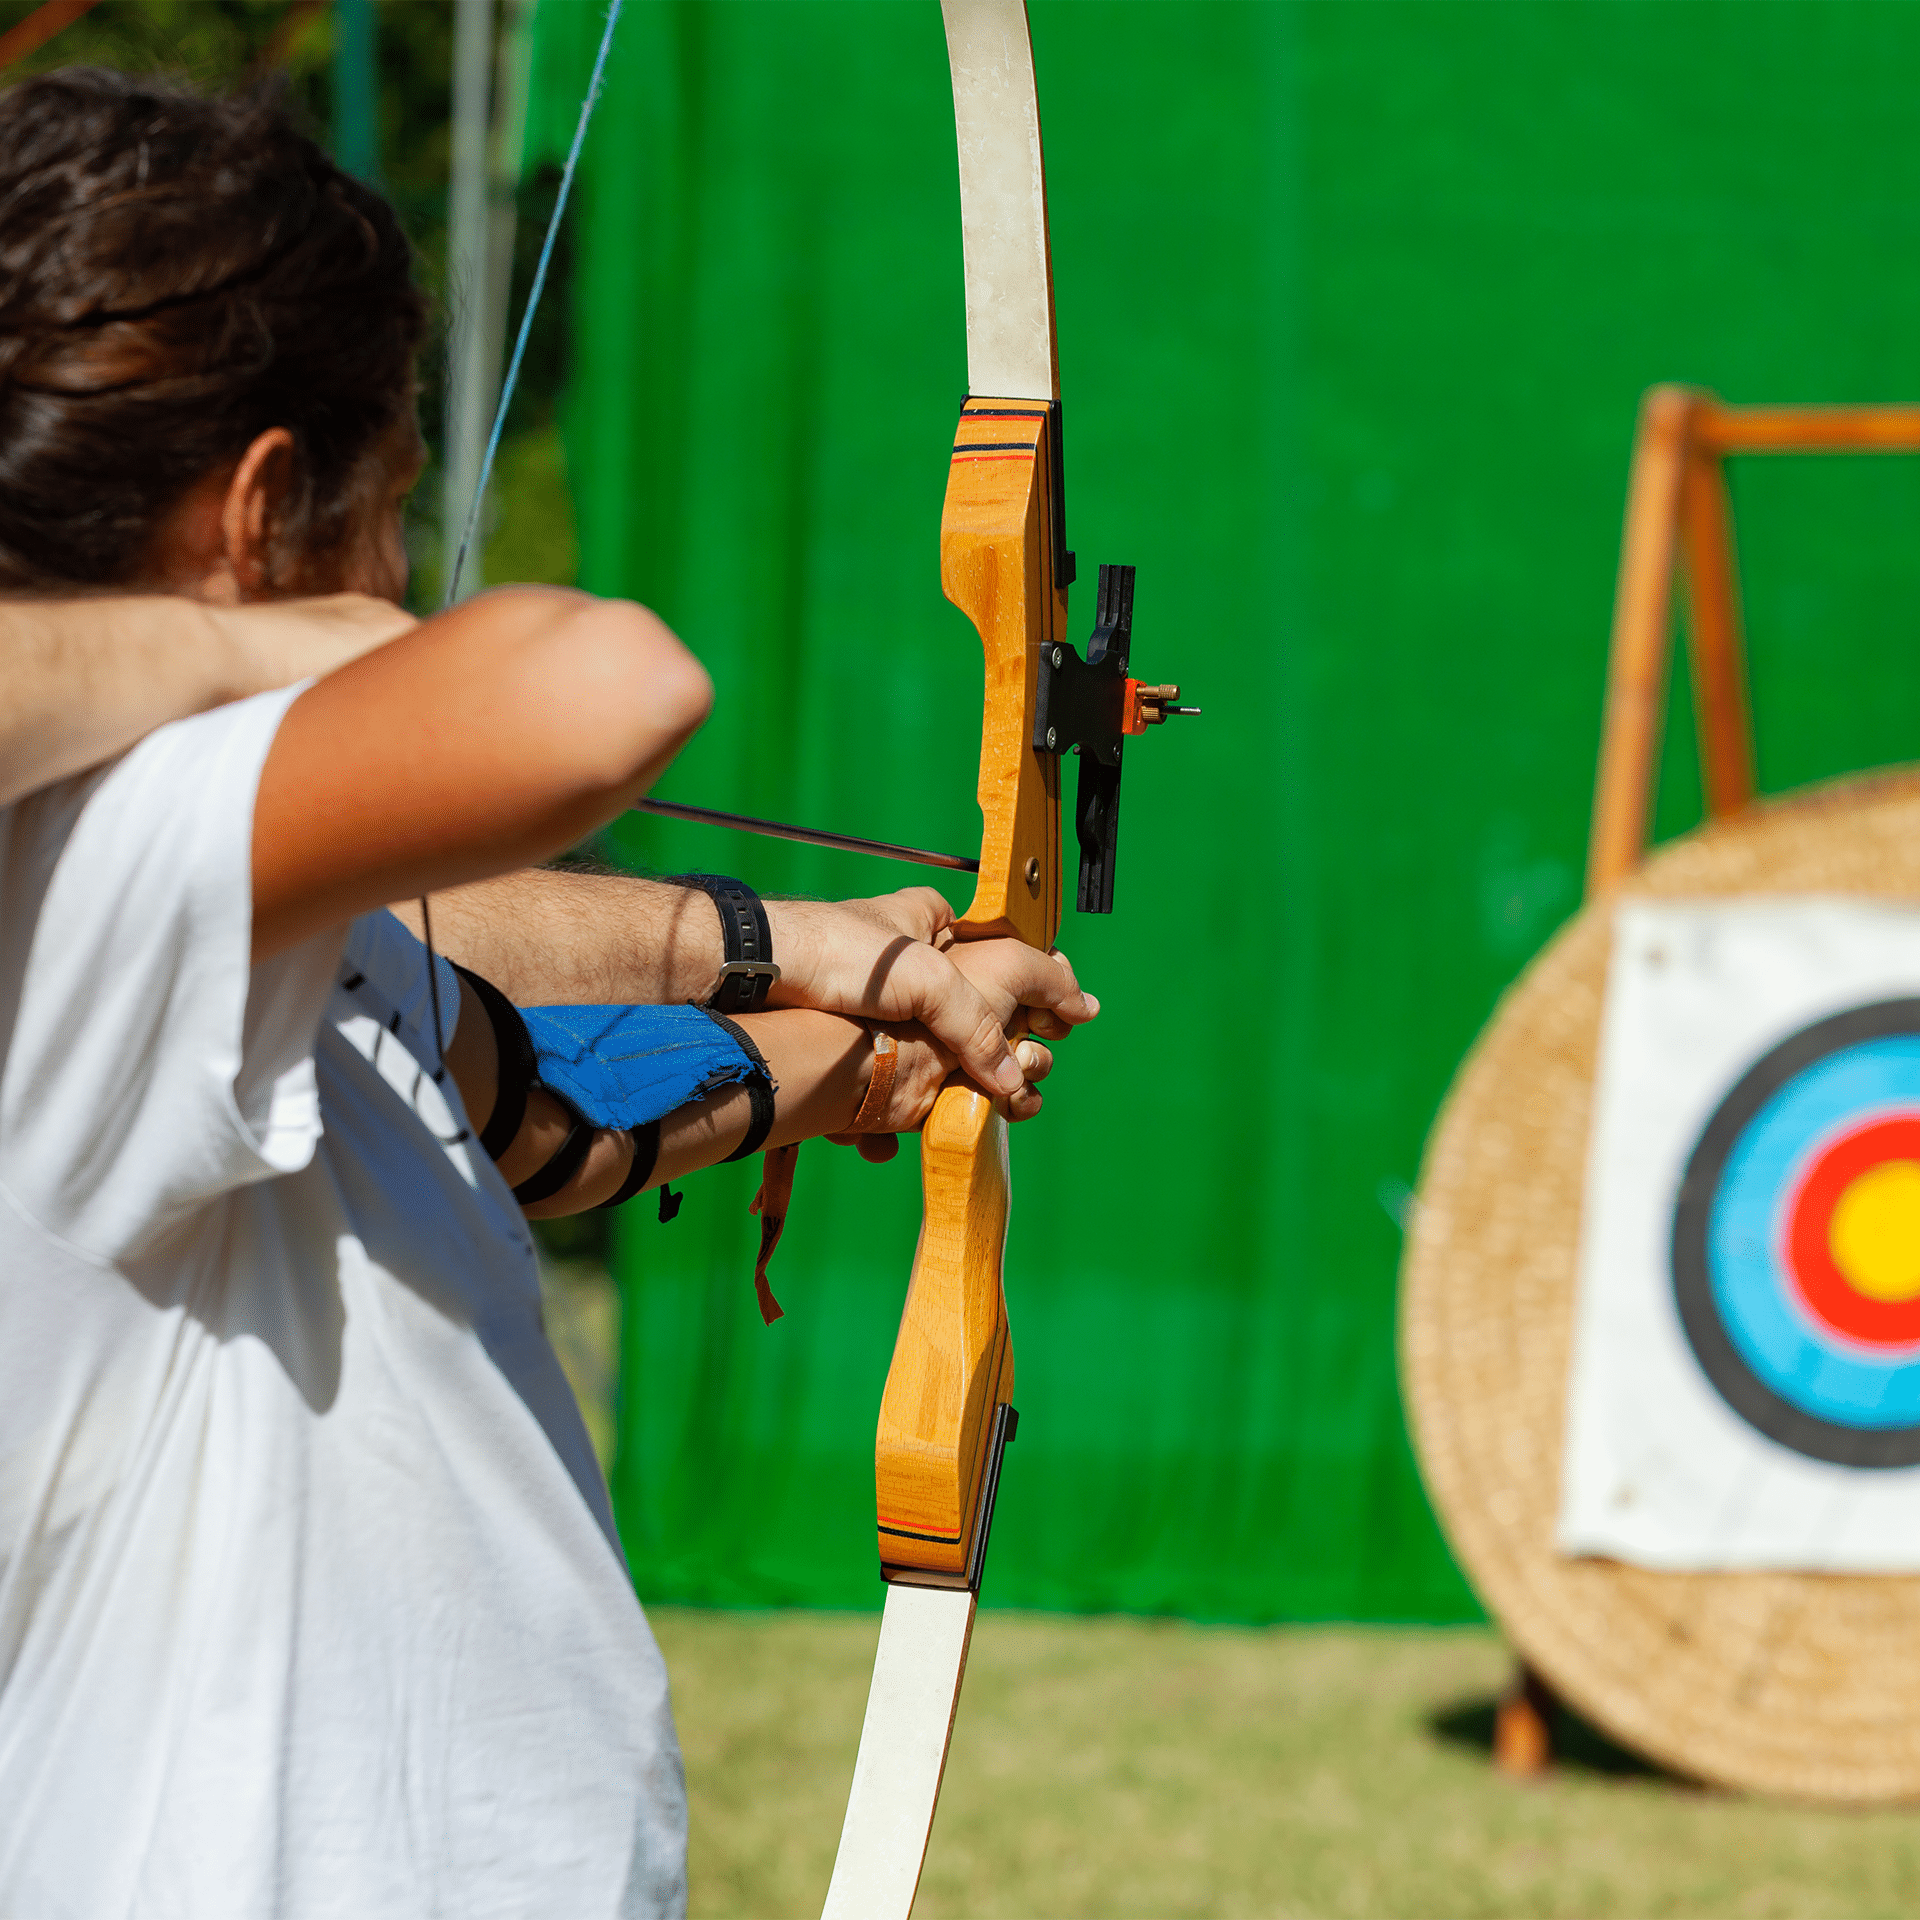 teacher showing archer how to shoot bow and arrow at archery target